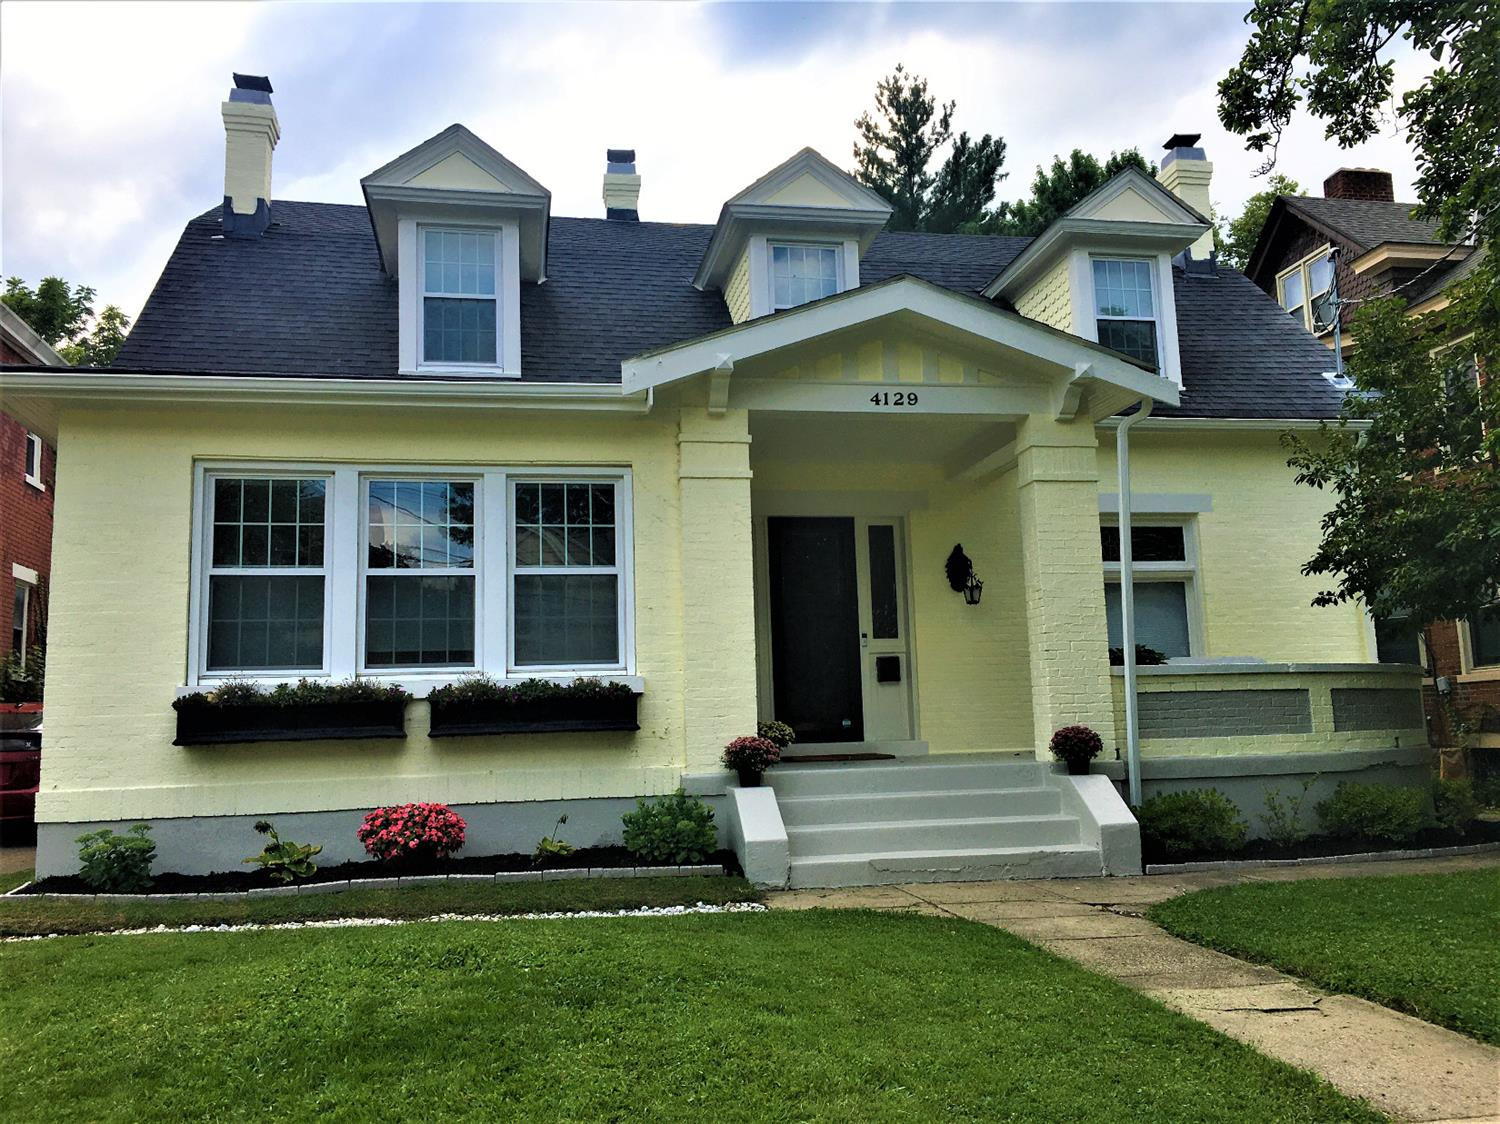 4129 Carter Ave Norwood, OH